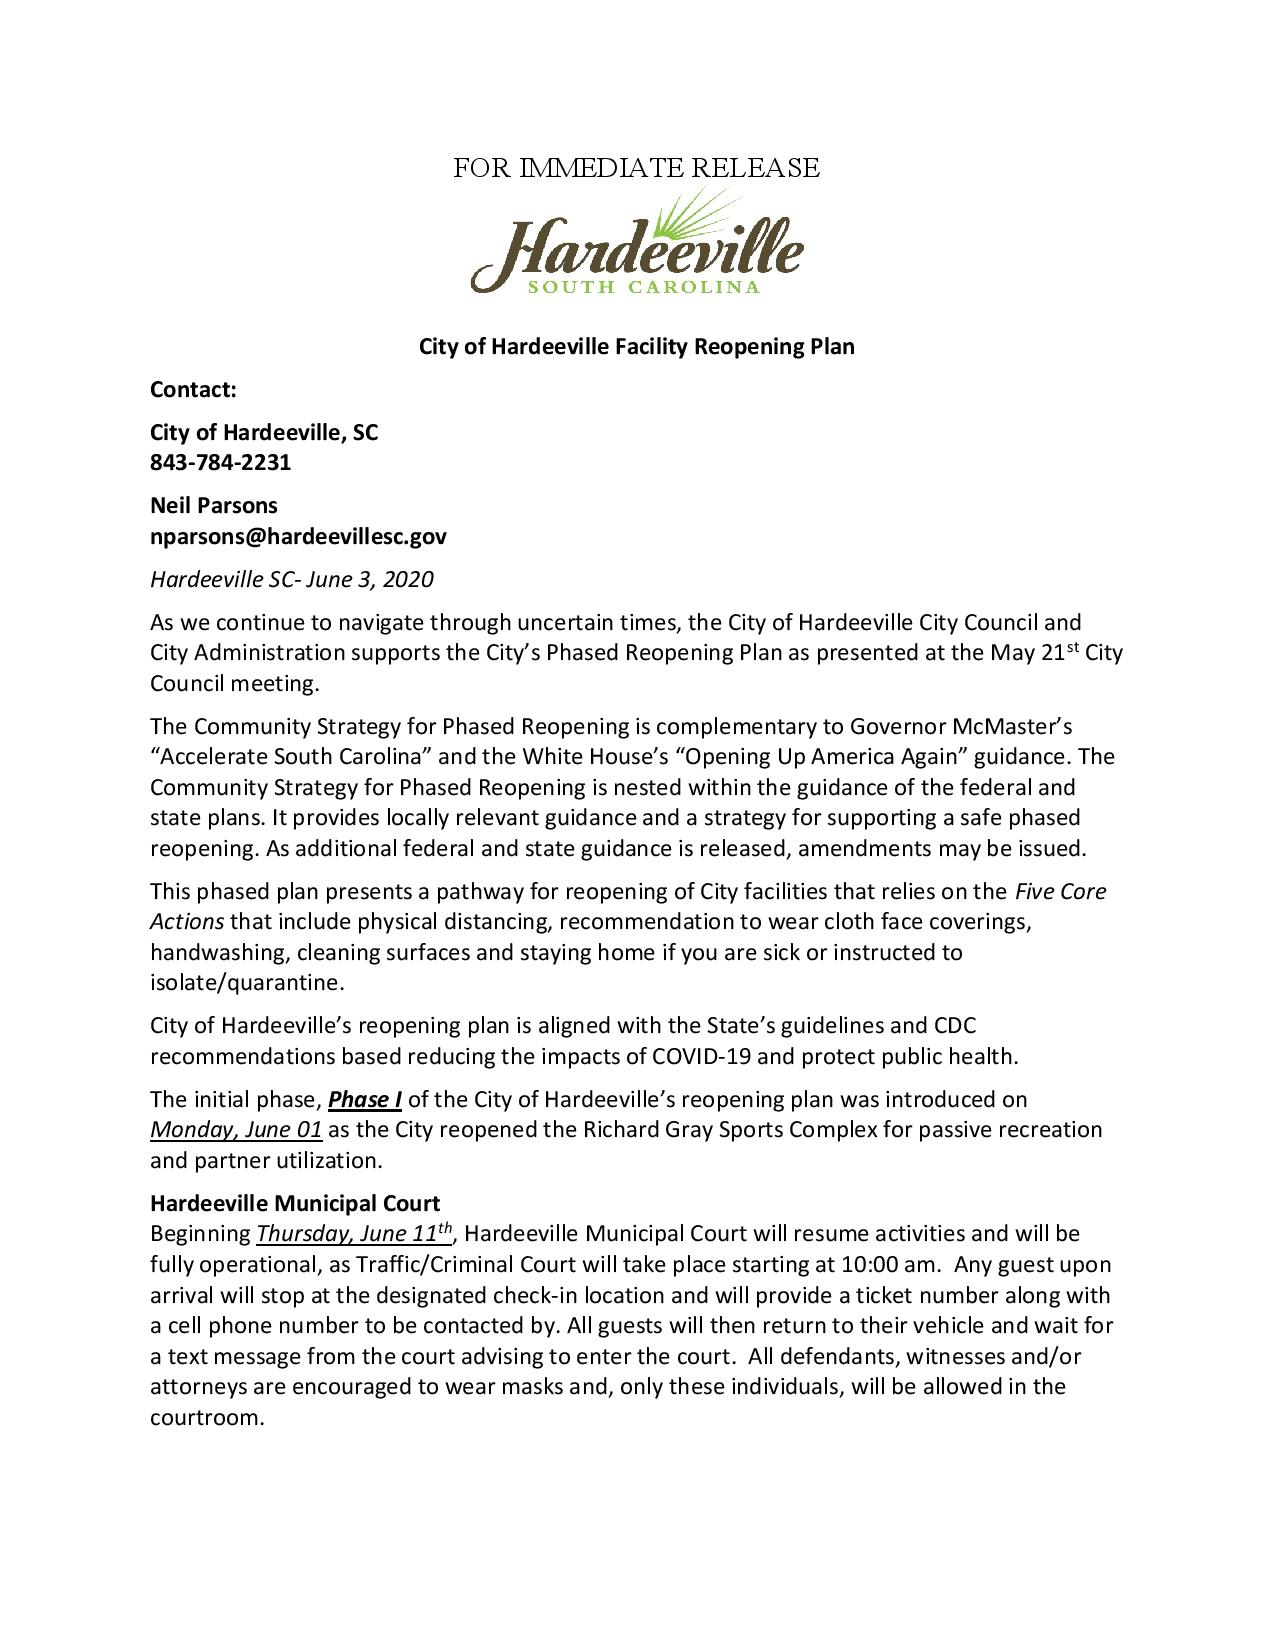 City of Hardeeville Reopening Plan Press Release-page-001